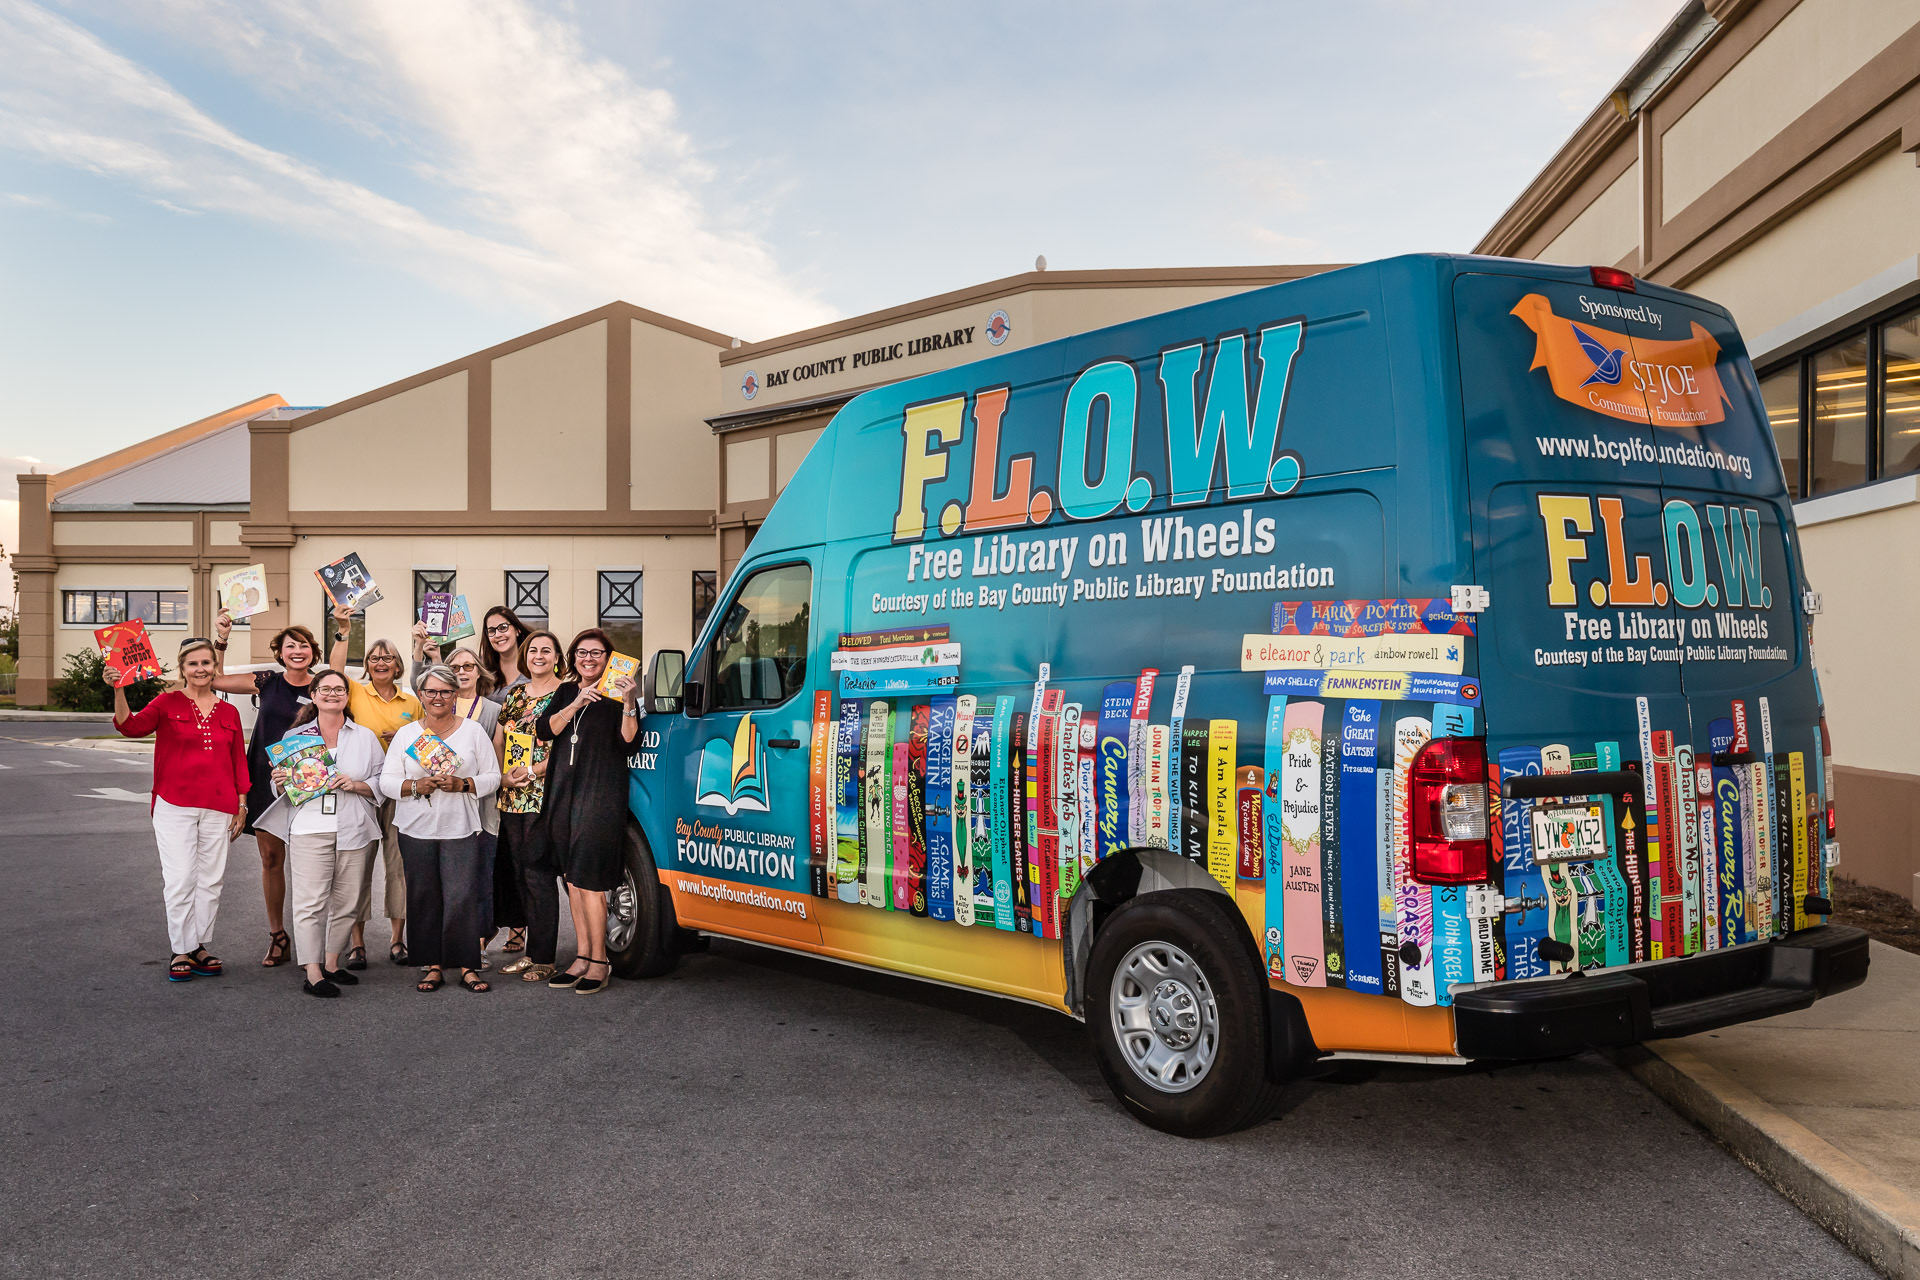 Free Library on Wheels